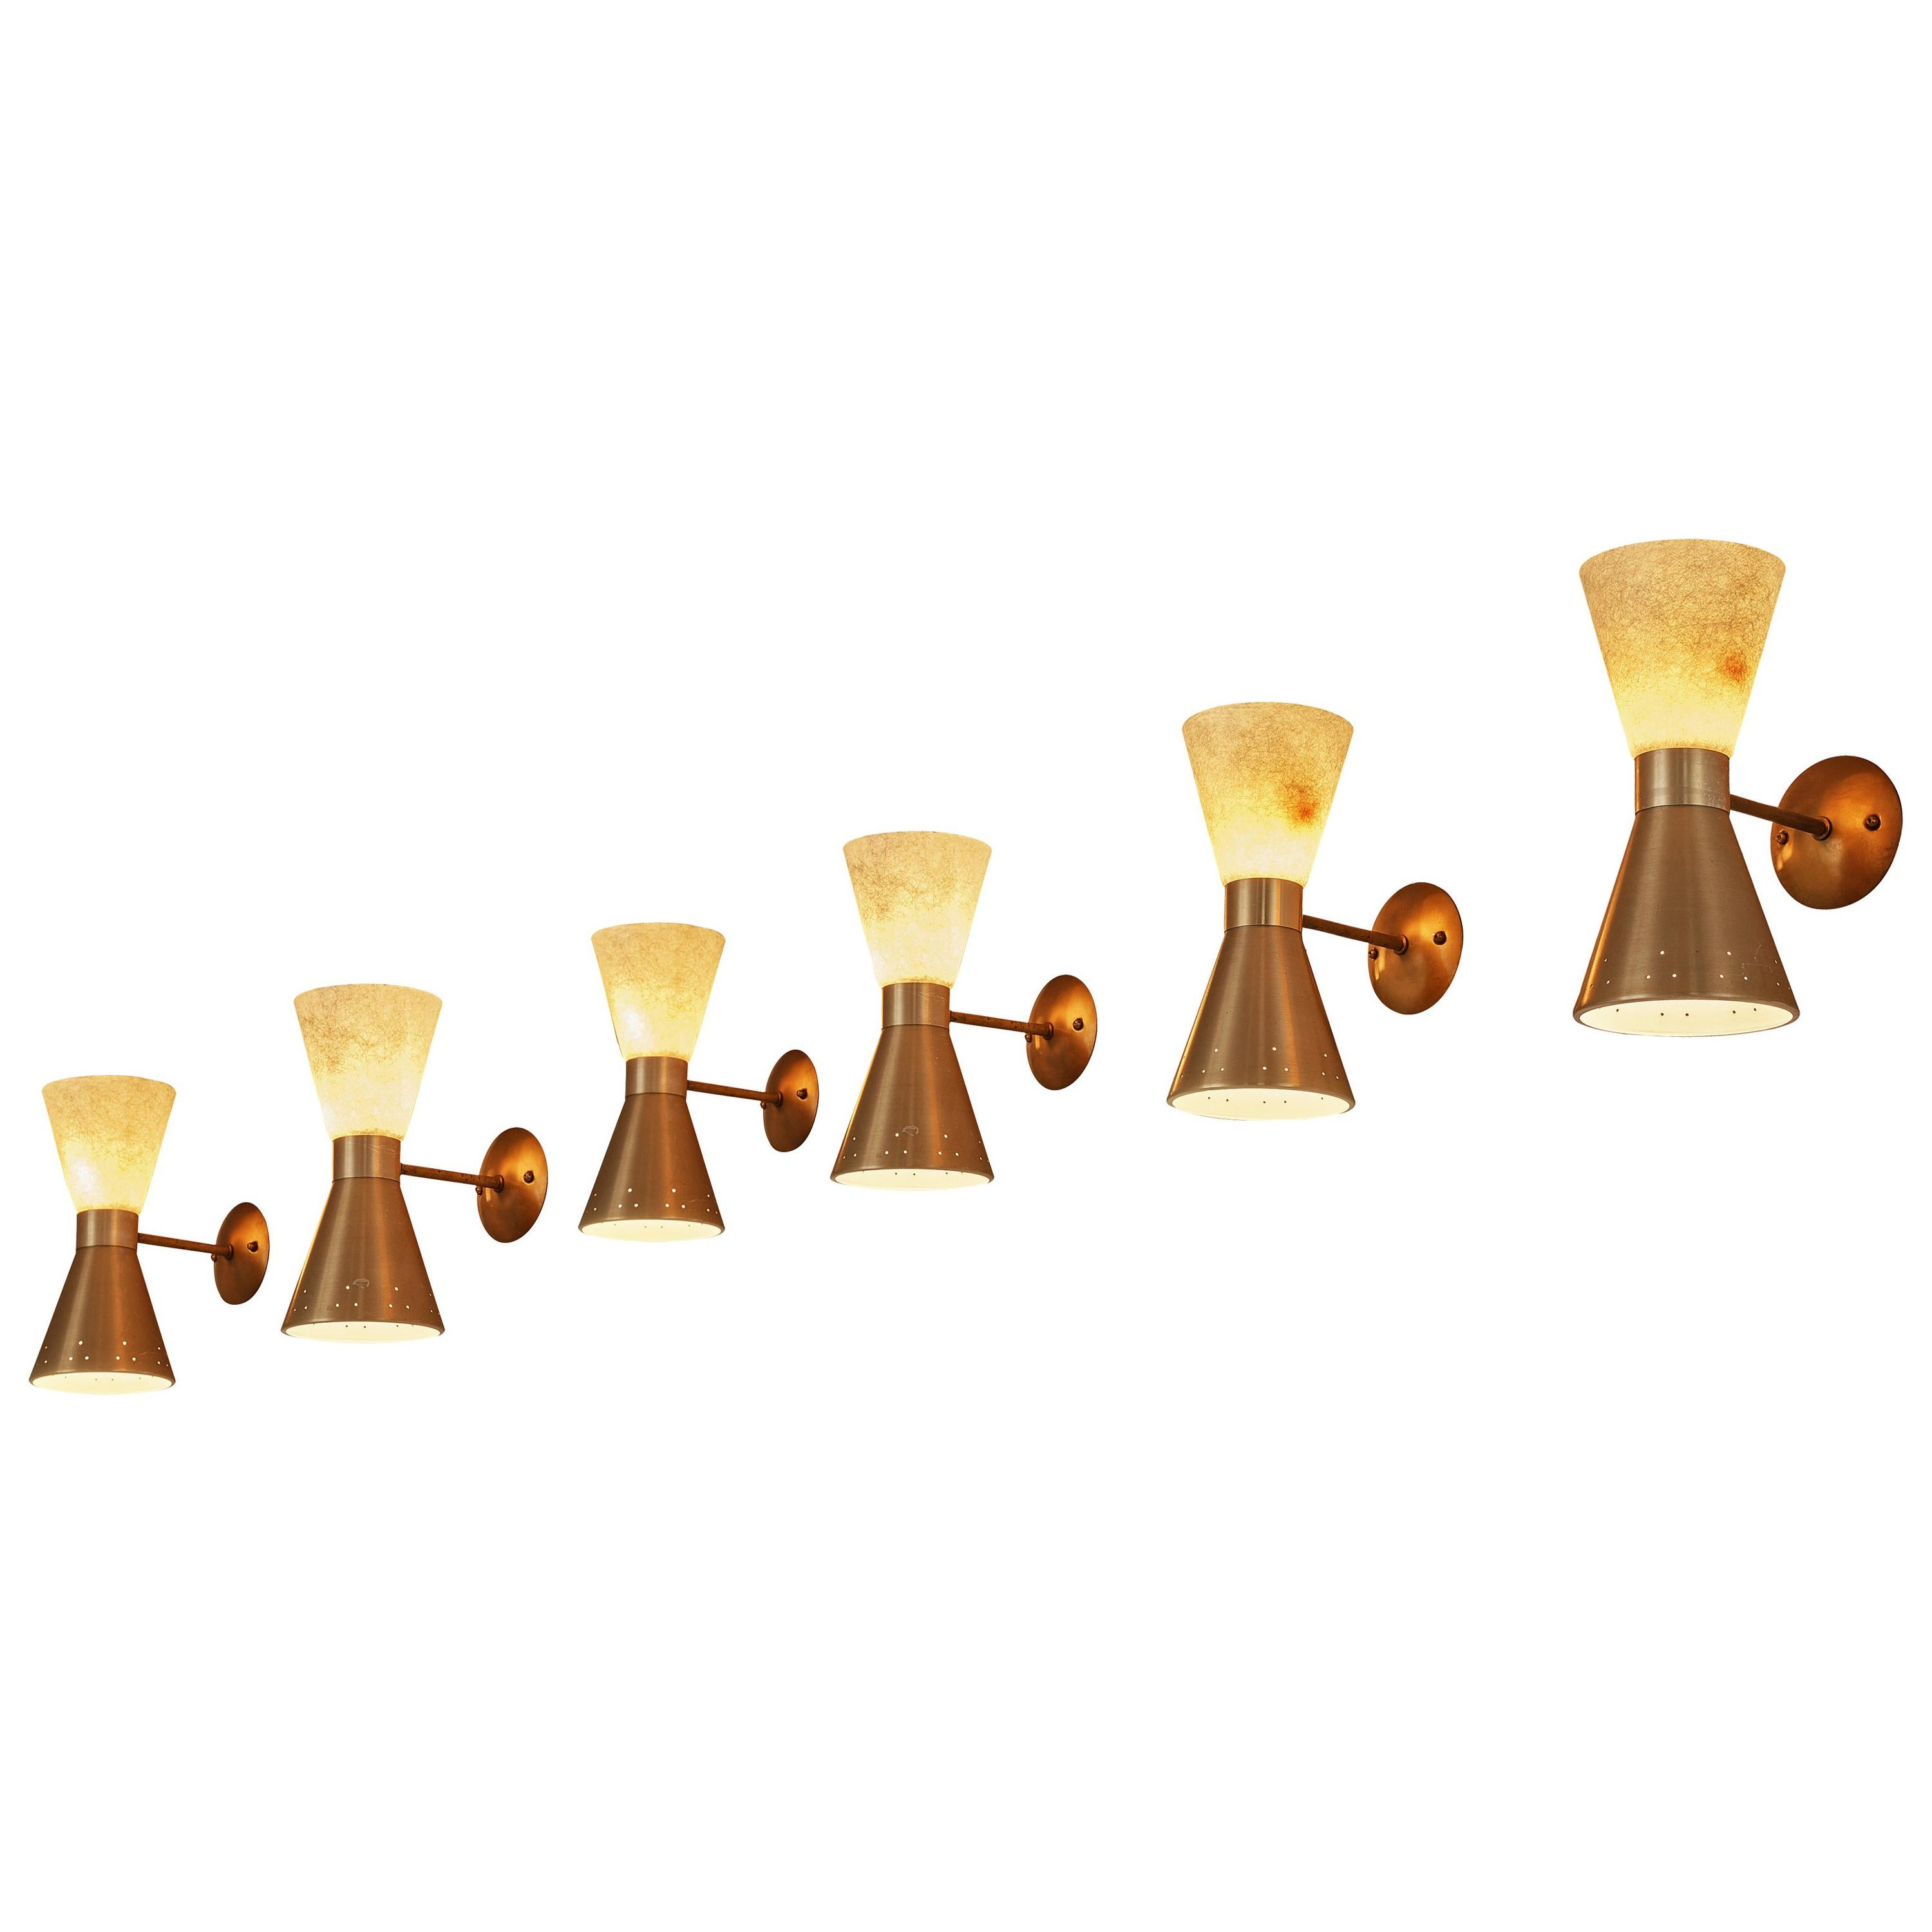 Elegant Double-Cone Wall Lights in Brass and Fiberglass